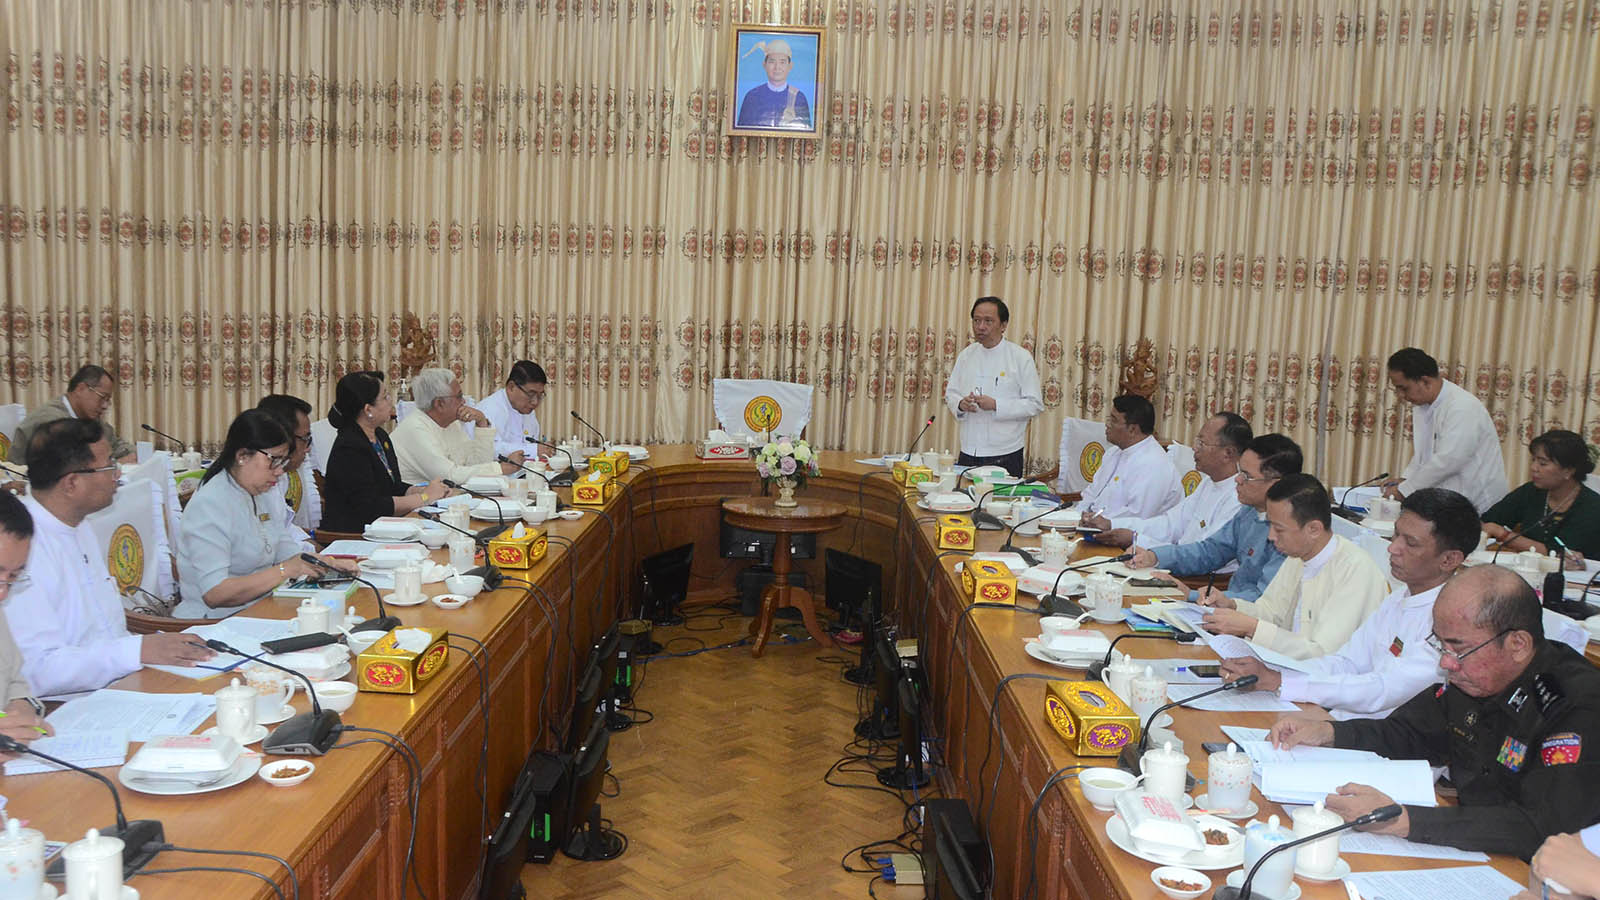 A meeting on prevention for Coronavirus Disease 2019 (COVID-19) held on 25 February 2020.Photo: MNA